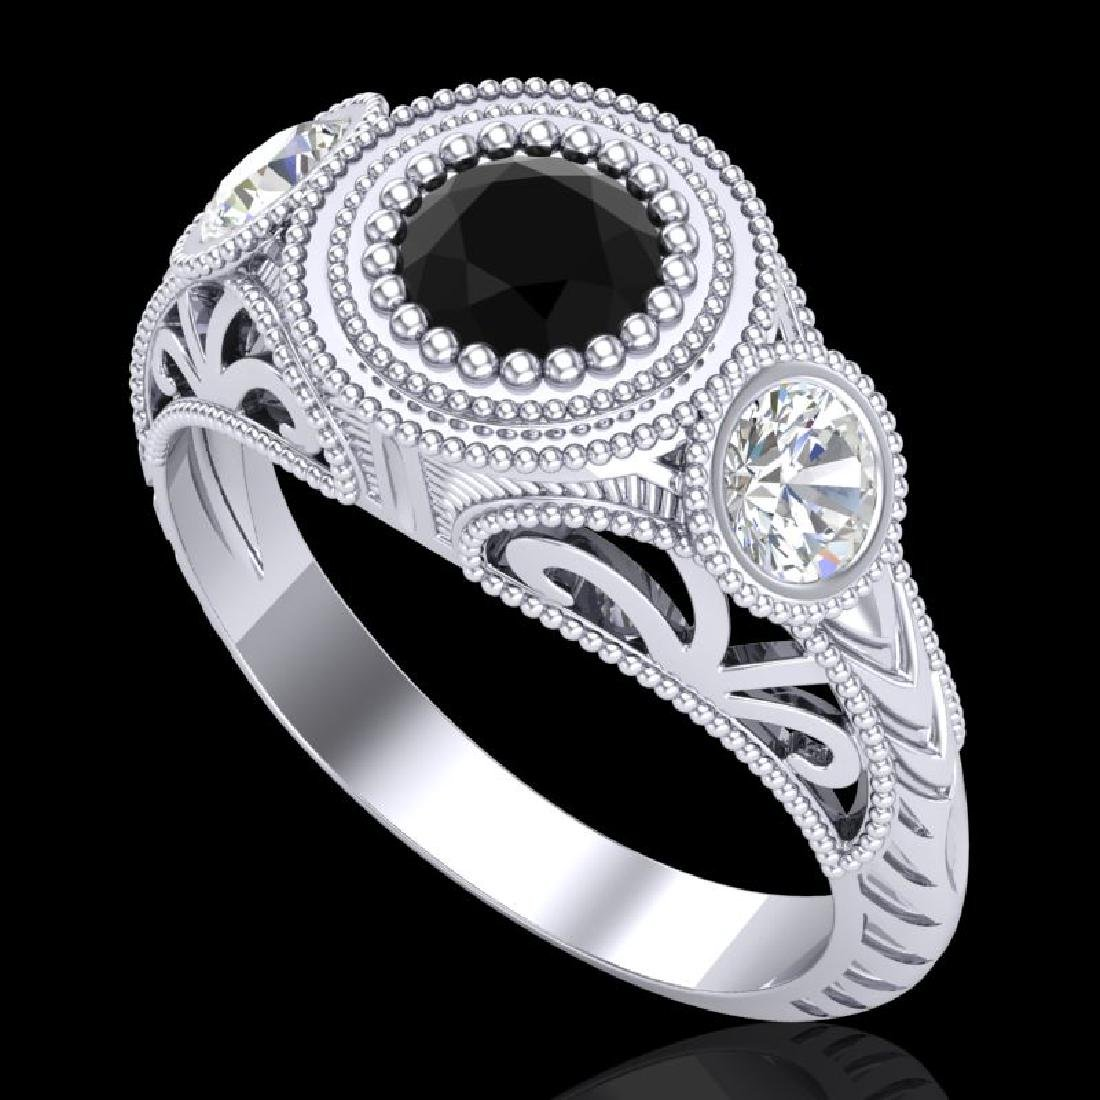 1.06 CTW Fancy Black Diamond Solitaire Art Deco 3 Stone